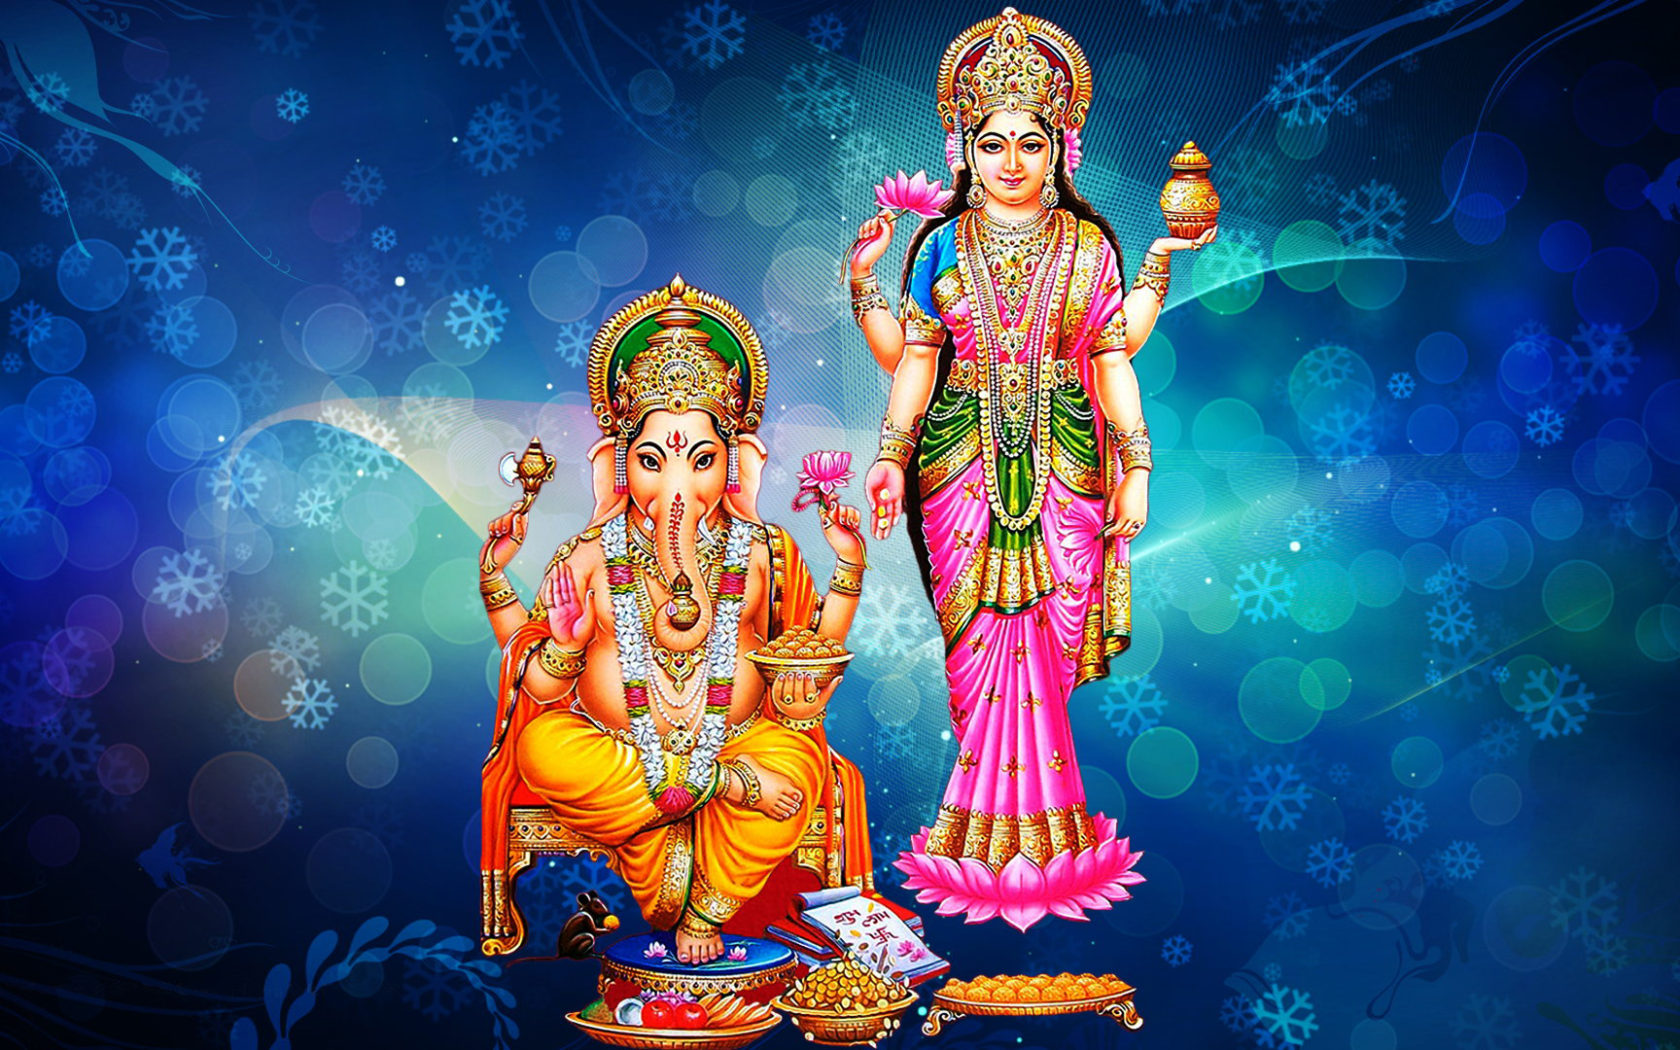 3d Wallpapers Lord Krishna Radha Goddess Laxmi And Lord Ganesh Blue Decorative Background